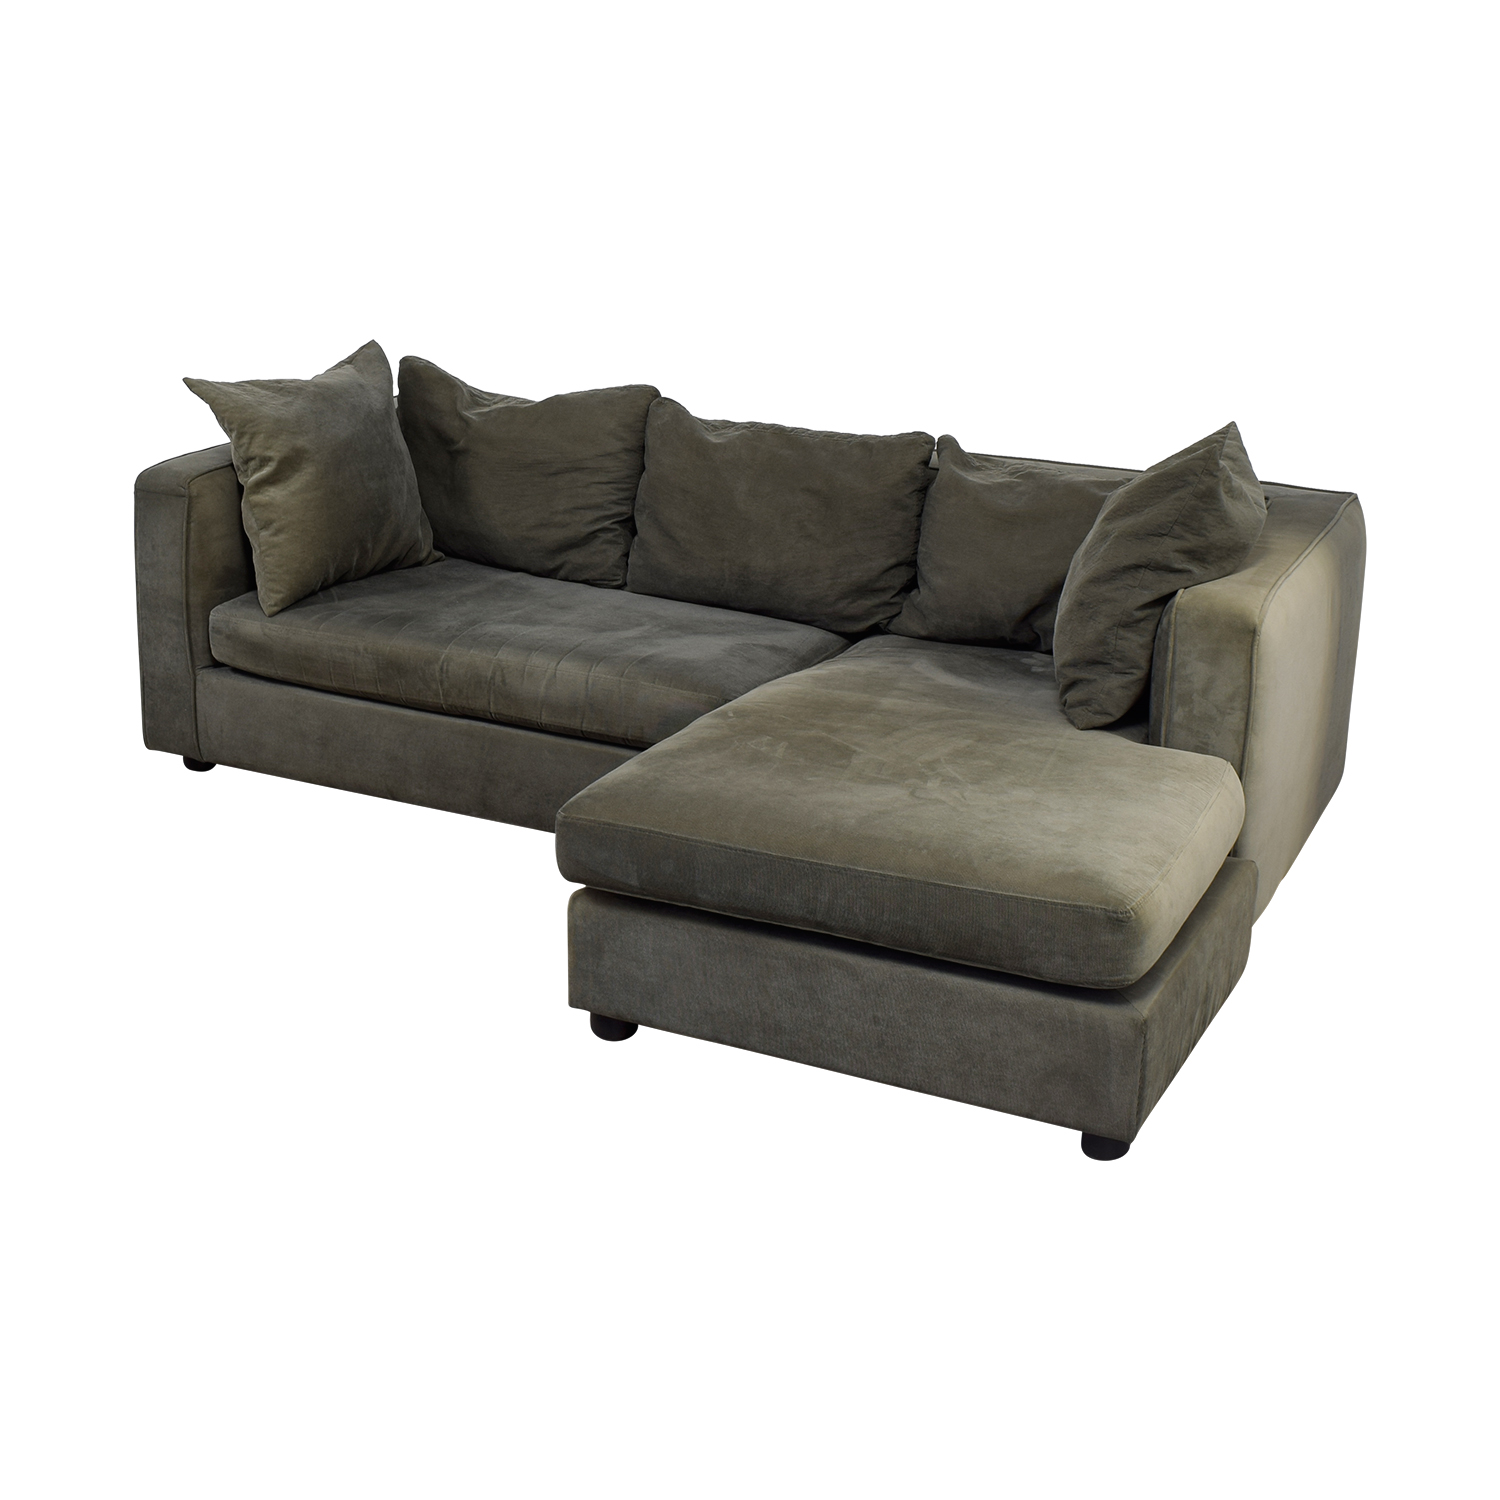 shop ABC Carpet & Home Grey L- Shaped Couch ABC Carpet & Home Sectionals